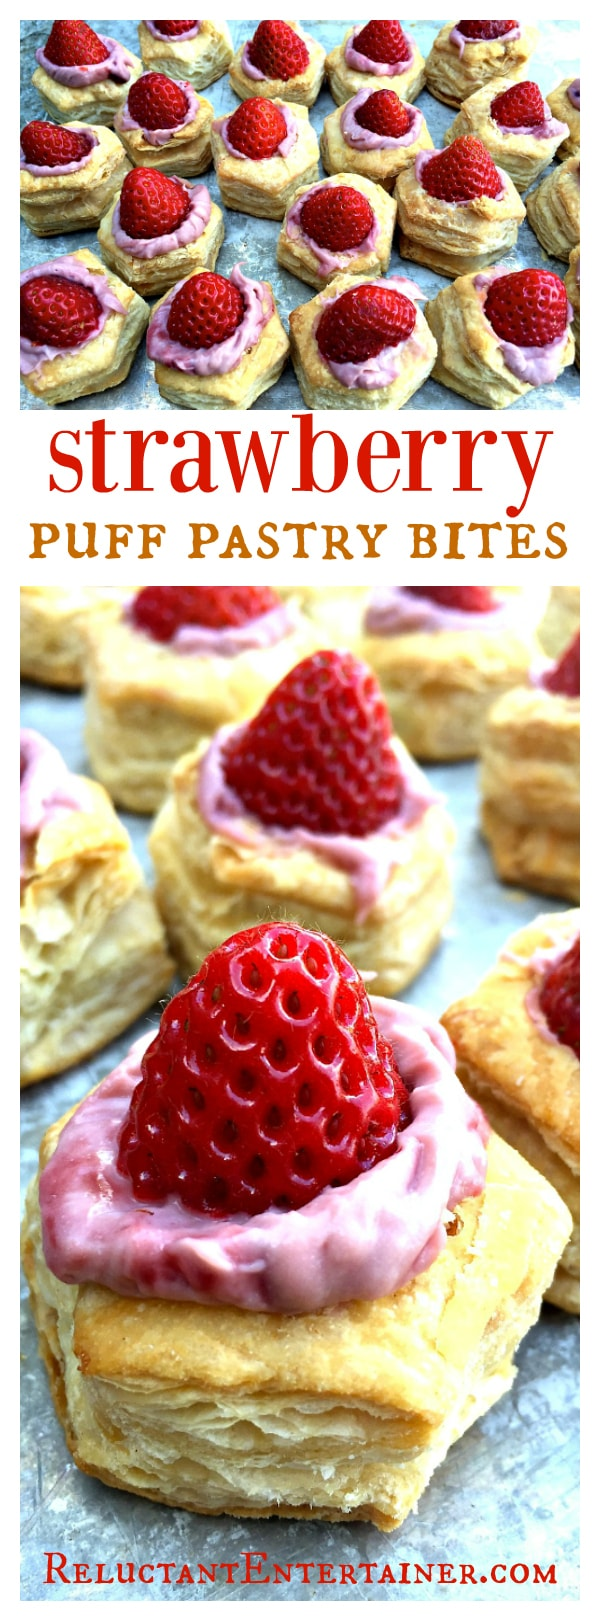 Strawberry Puff Pastry Bites for springtime or summer entertaining; perfect for Mother's Day!